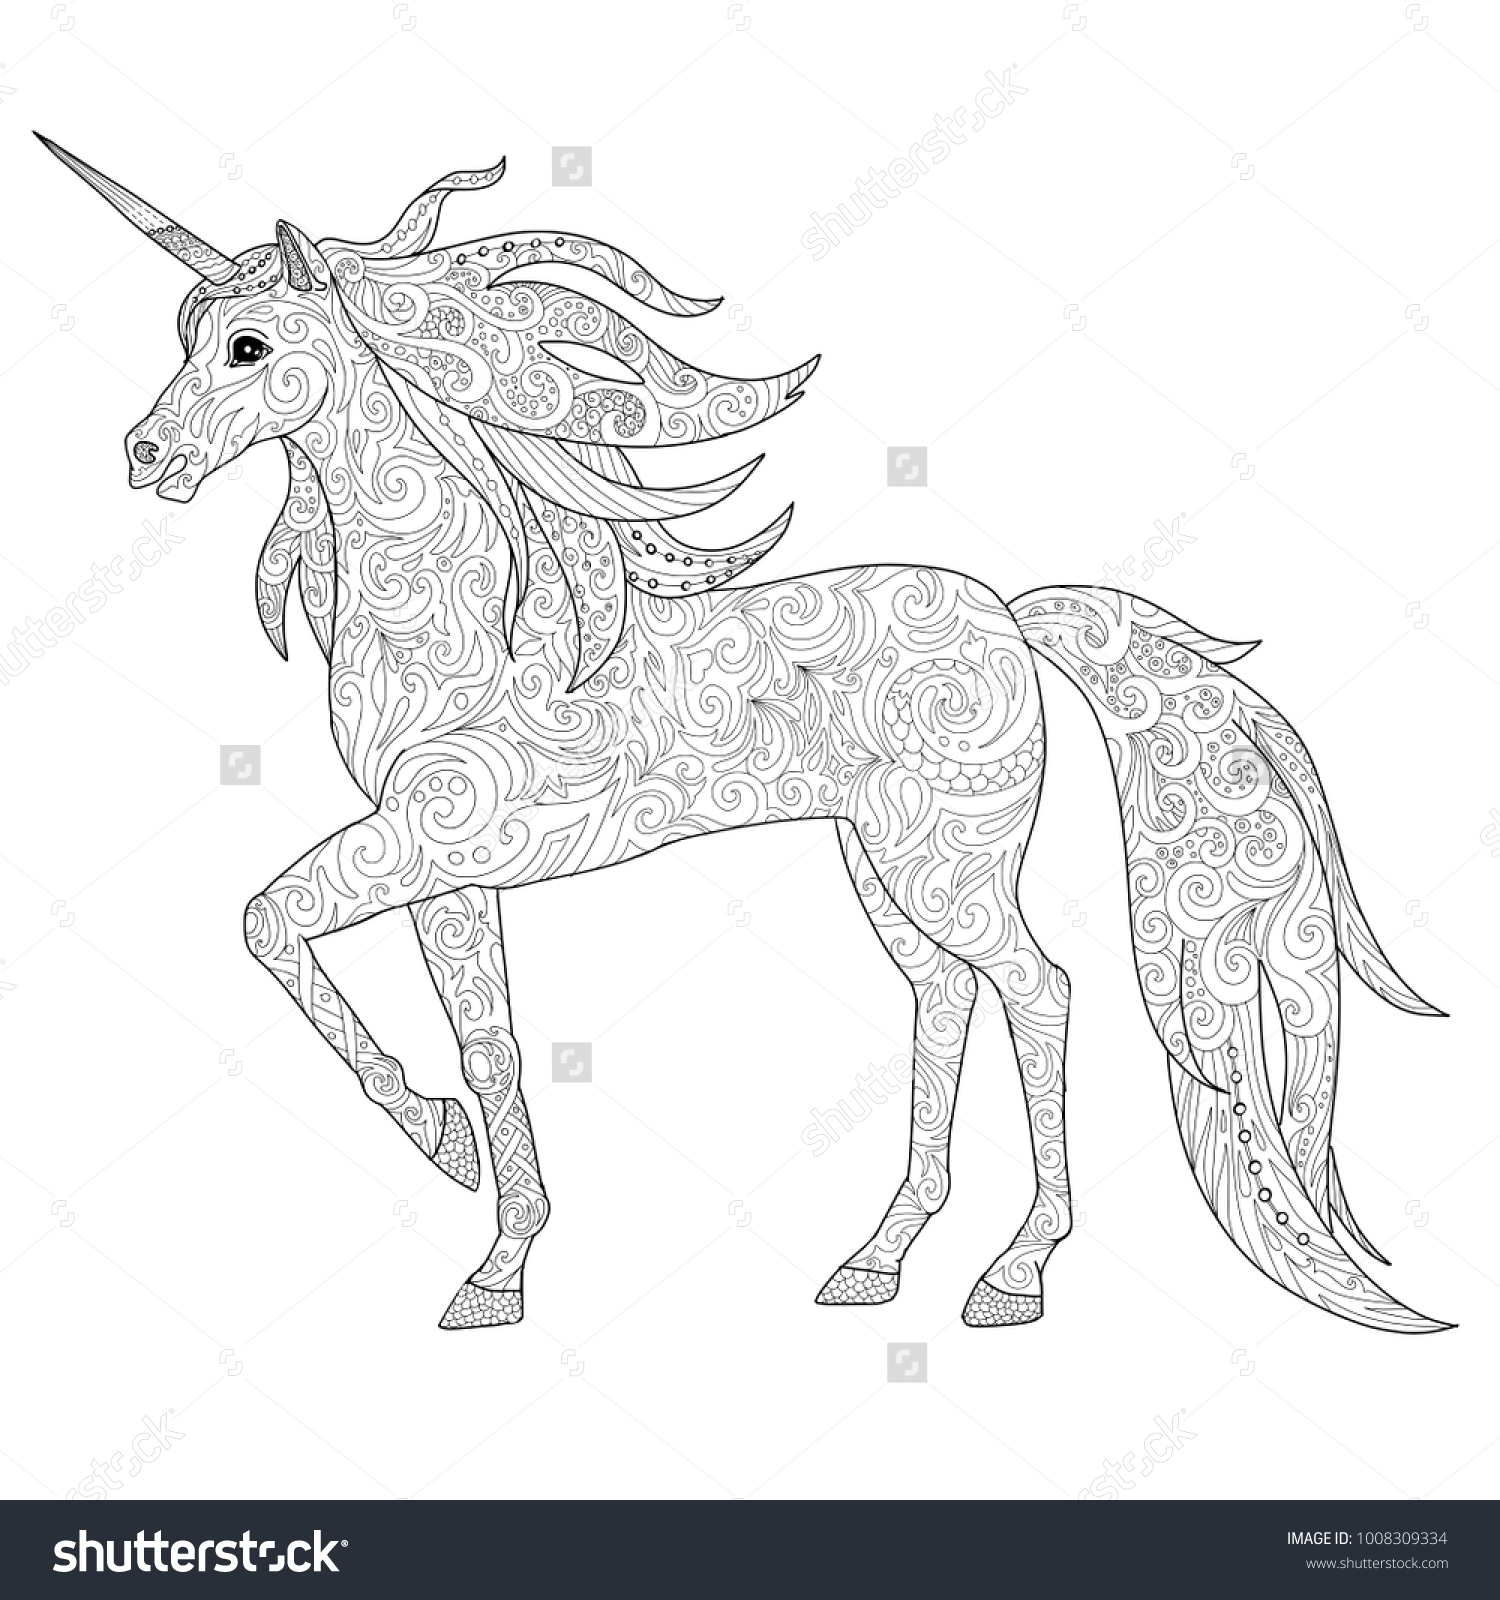 Unicorns horse page for adult coloring book magical animal vector illustration